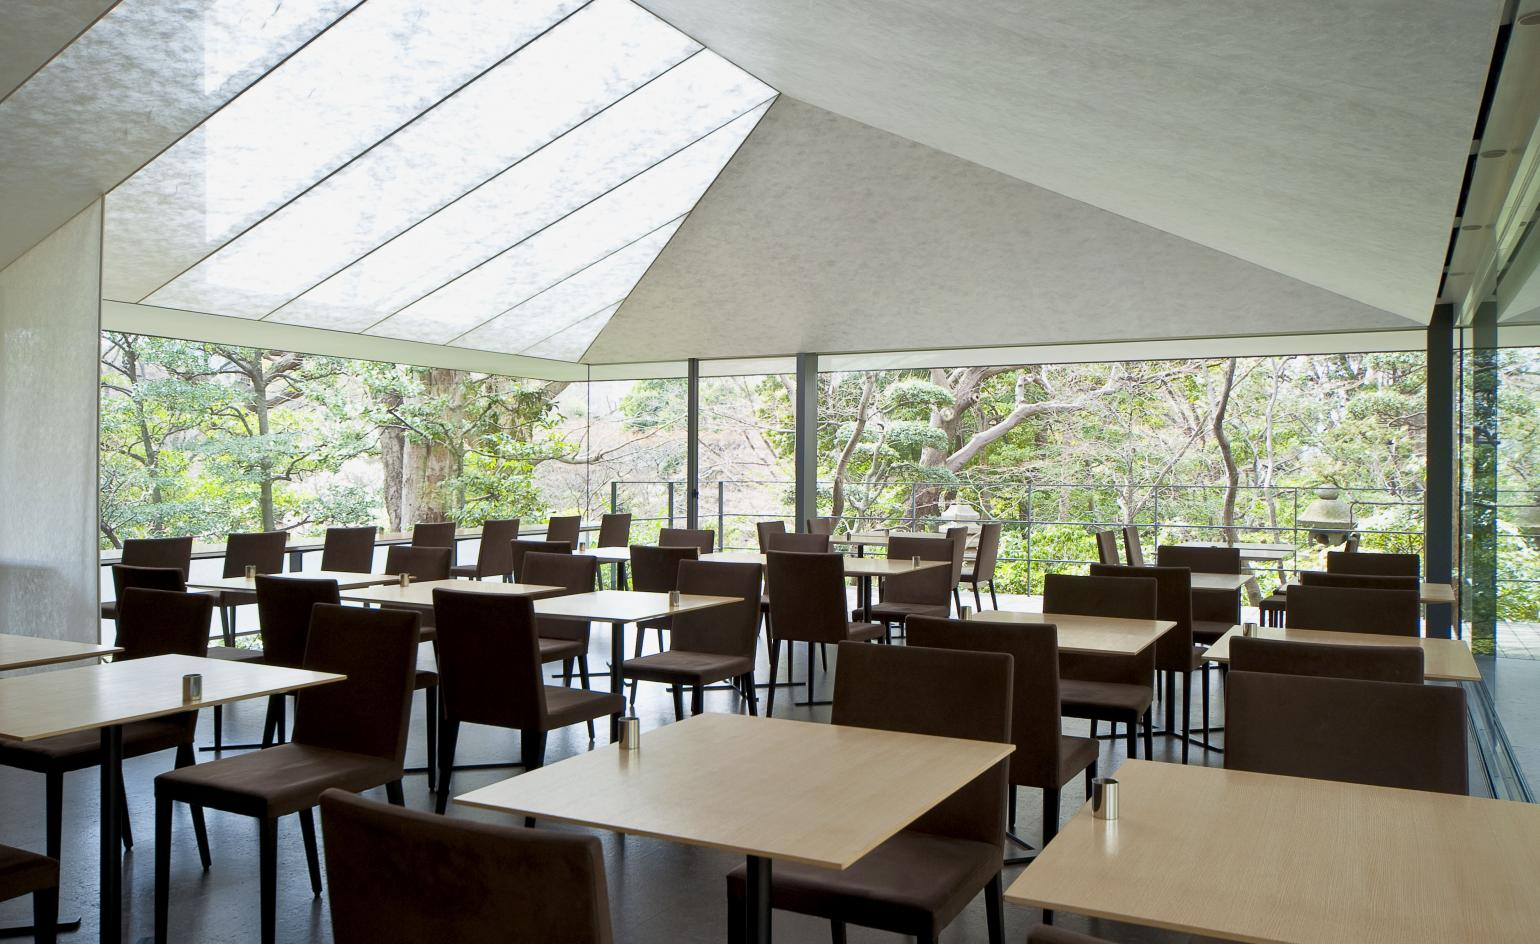 Kengo Kuma on the cultural perspectives of Japanese furniture